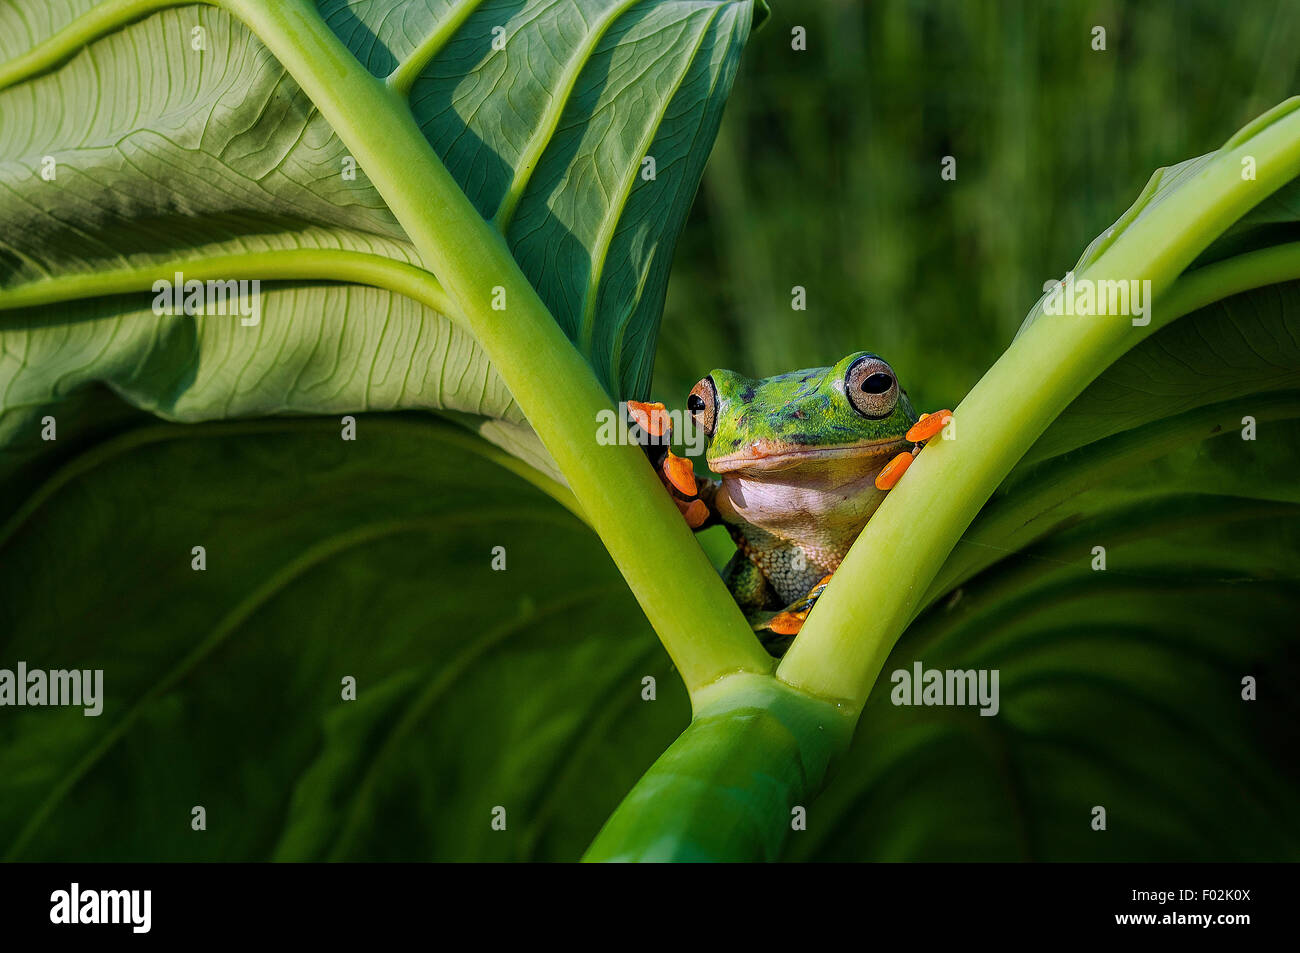 Frog looking out from between two leaves - Stock Image